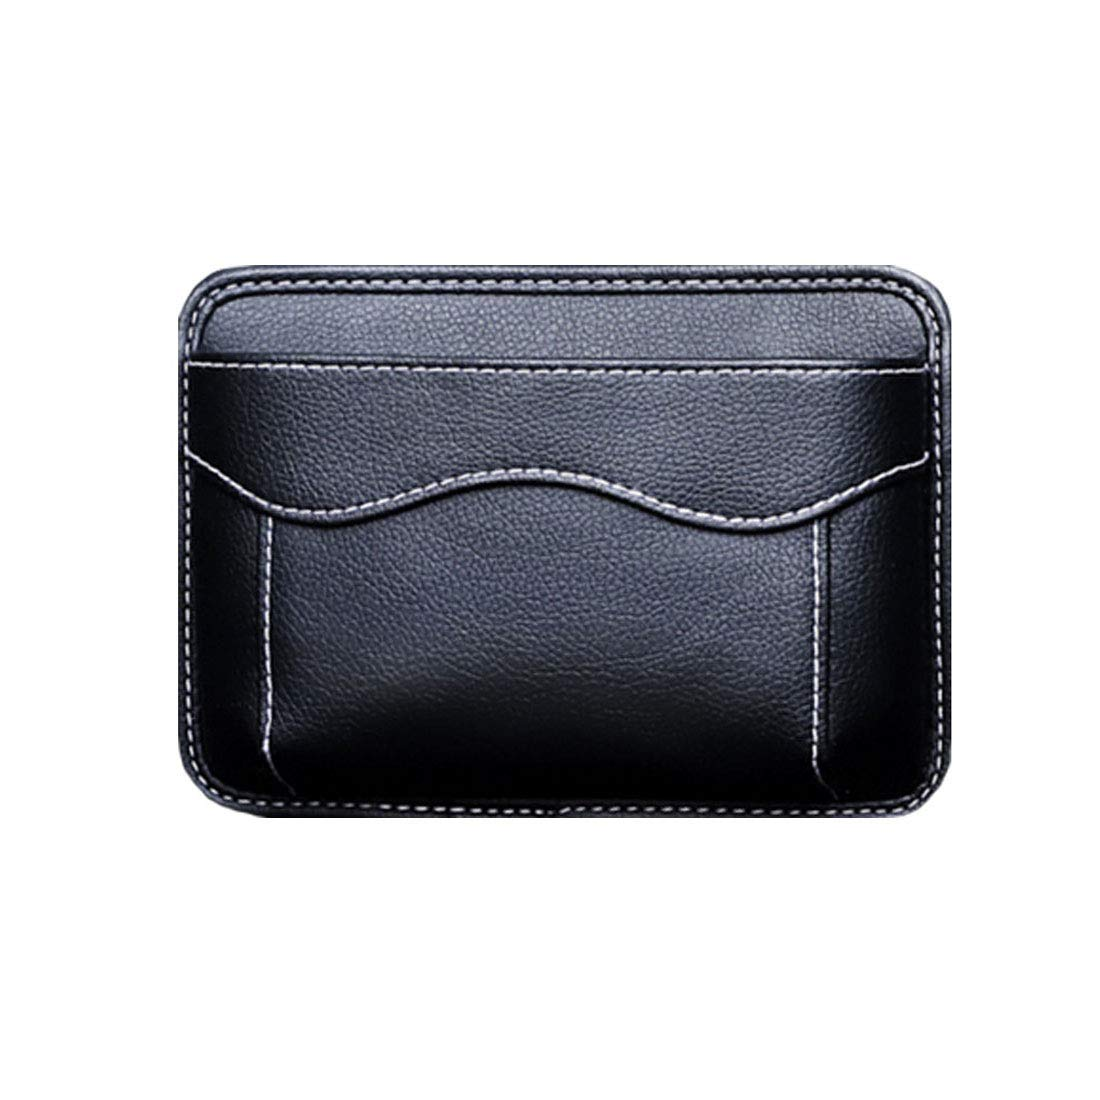 Car Side Pocket Organizer, Auto Seat Pockets PU Leather Pen Phone Holder Tray Pouch Used for Car Door, Window, Console, Seat -Fits to Organize Document, Registration, Notepad, Gadgets, Pen(All Black)) by AMOUTOR